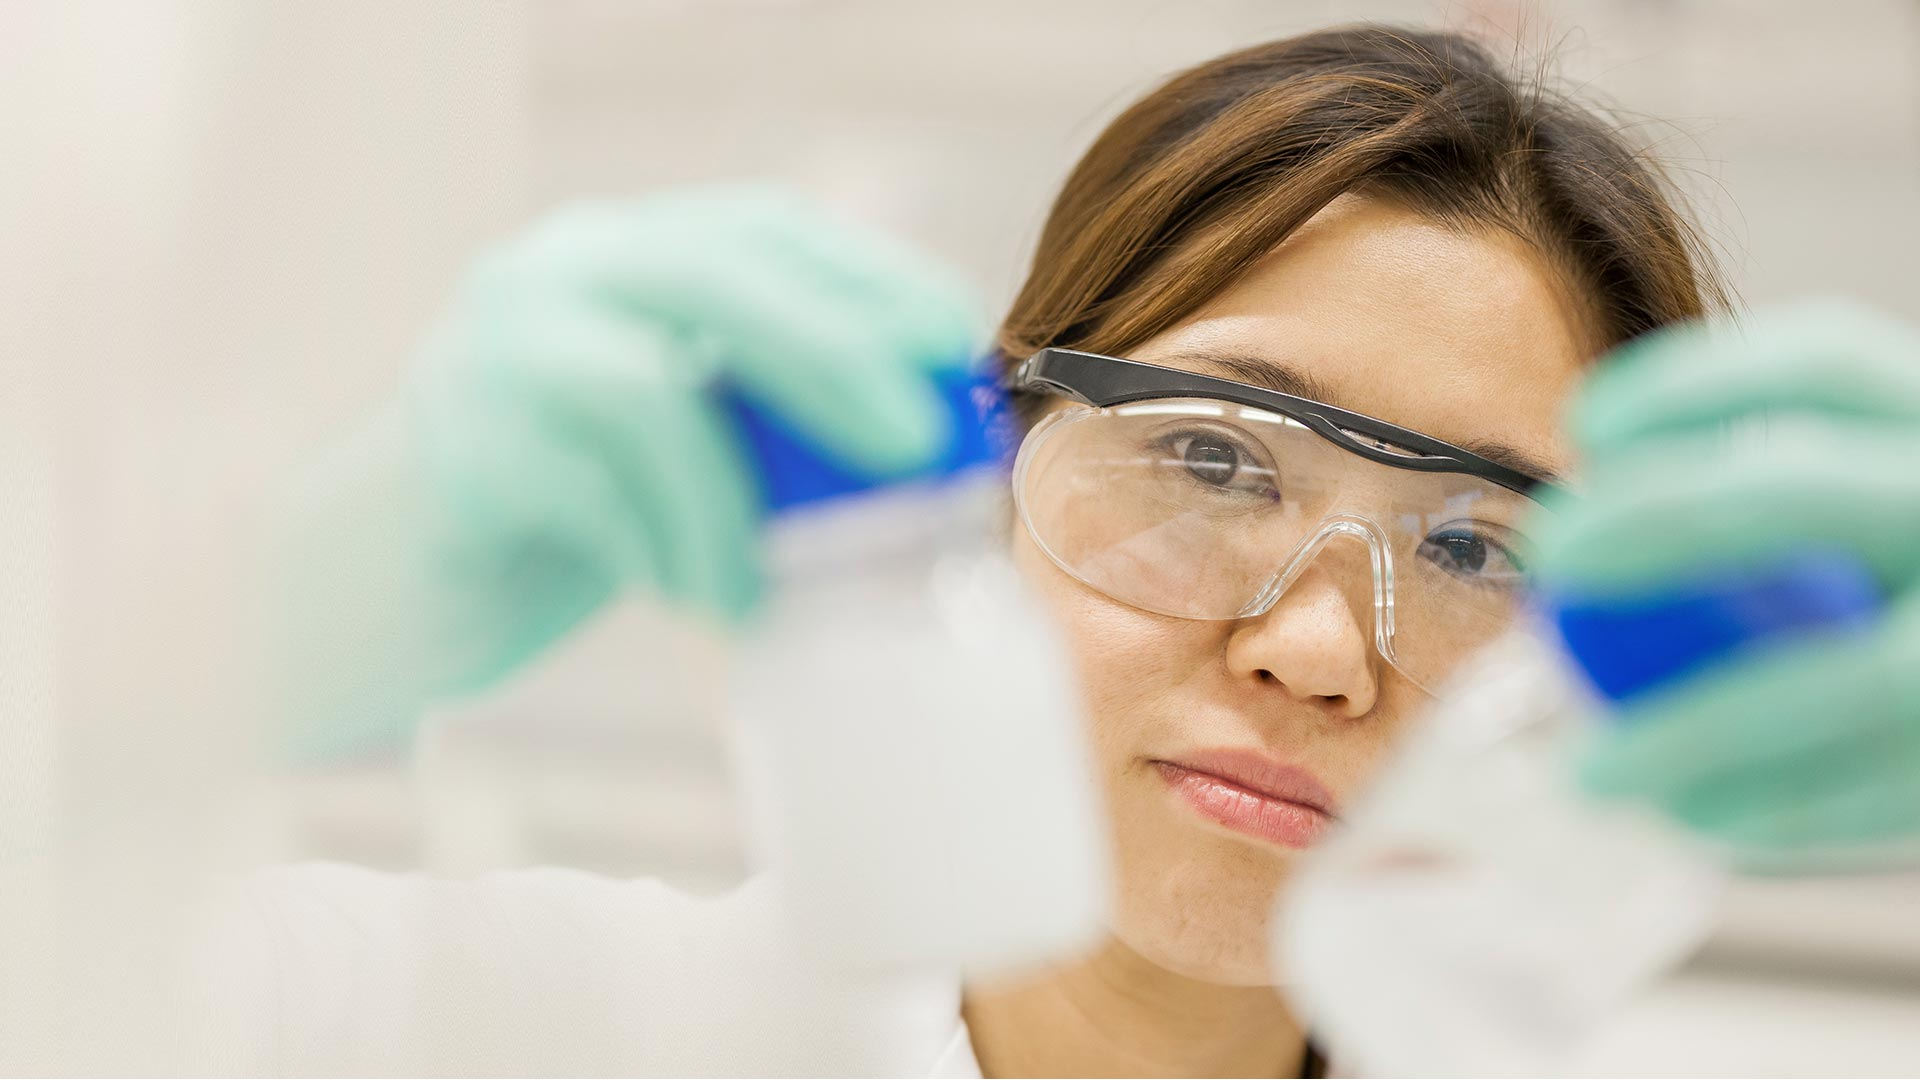 Female researcher wearing goggles and gloves, inspecting samples